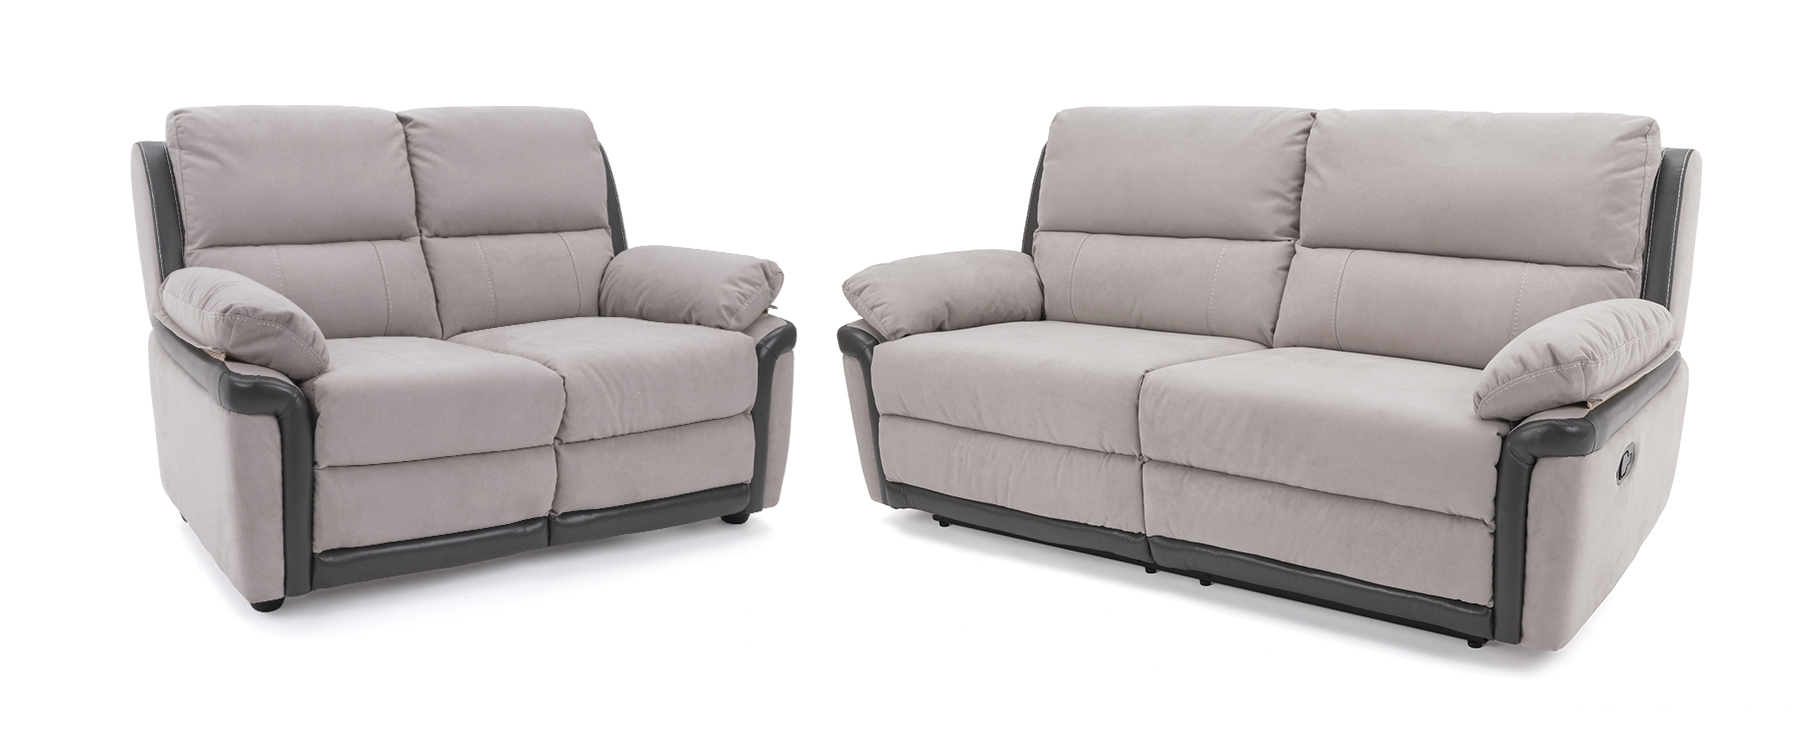 Sofa And Home Voucher Code Tahiti 3 Seater Recliner 2 Seater Fixed